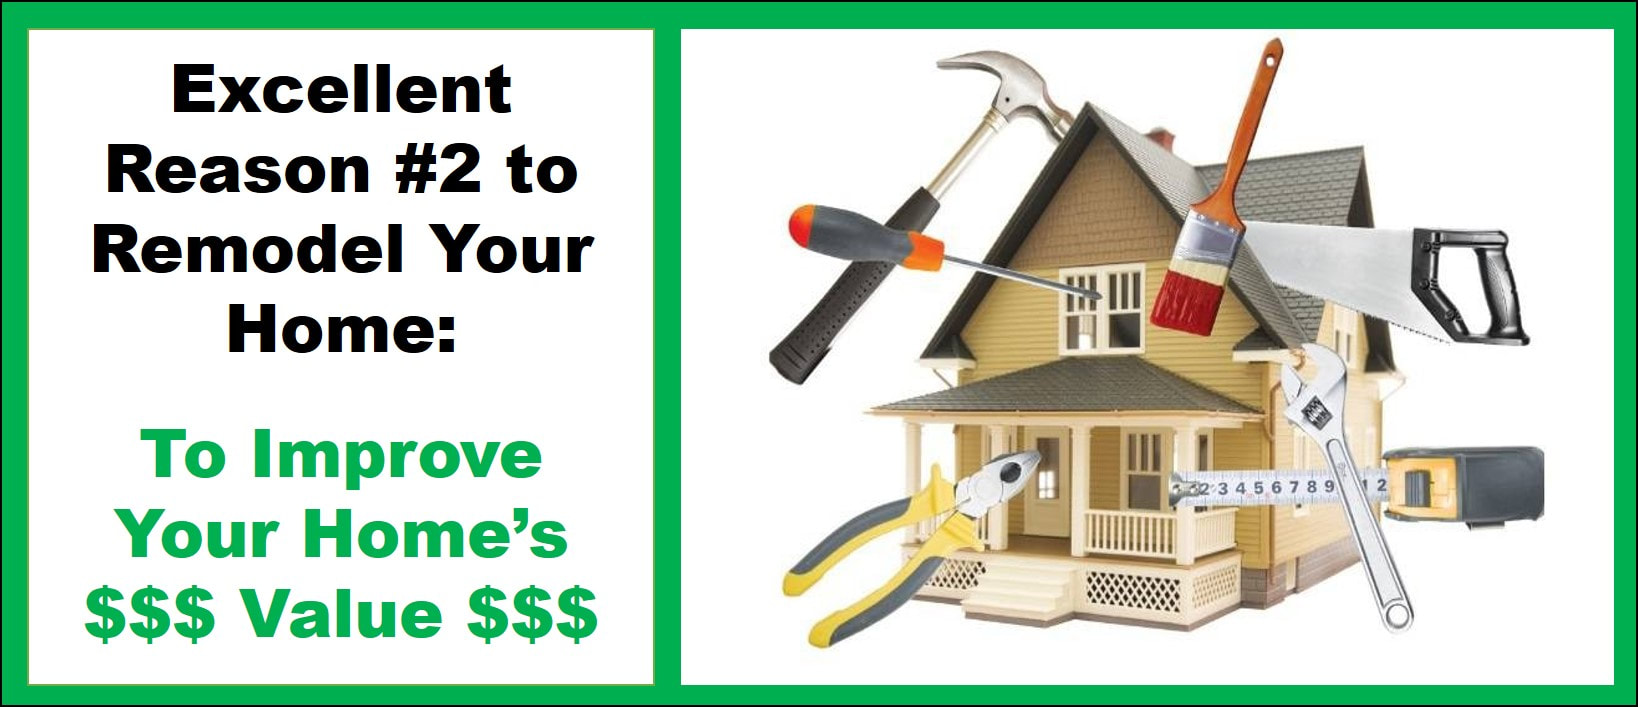 Excellent Reason to Remodel #2 - to improve home value